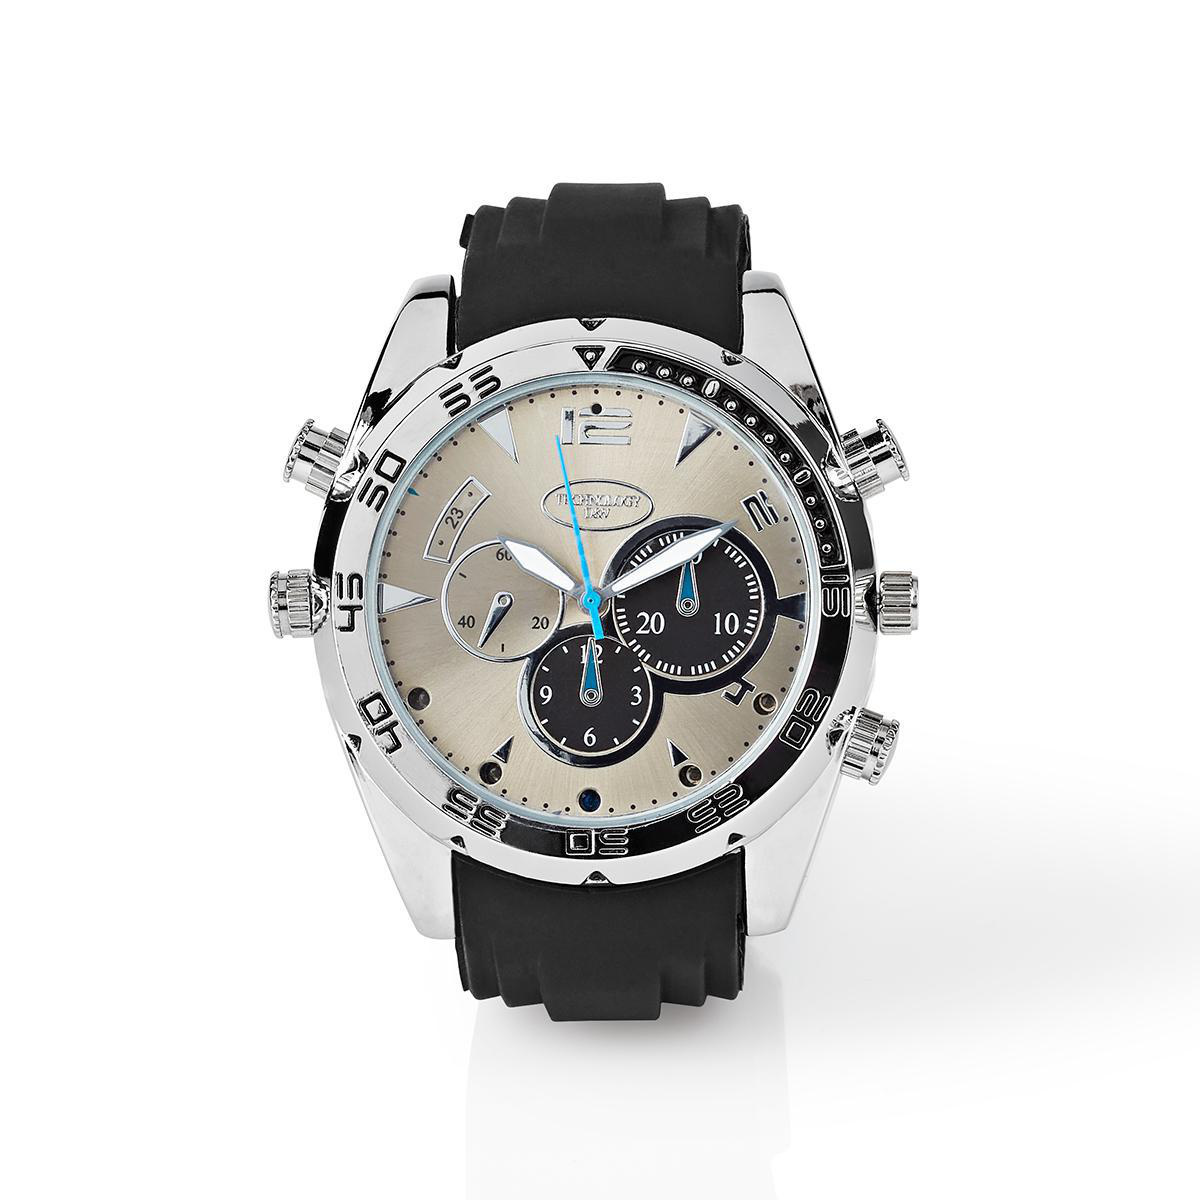 Wrist watch with integrated camera | 1920x1080 video | 2560x1440 photo | 16 GB memory | Rechargeable Take high resolution videos or photos, without anyone noticing. This watch with hidden camera is water resistant and equipped with night vision. This allo